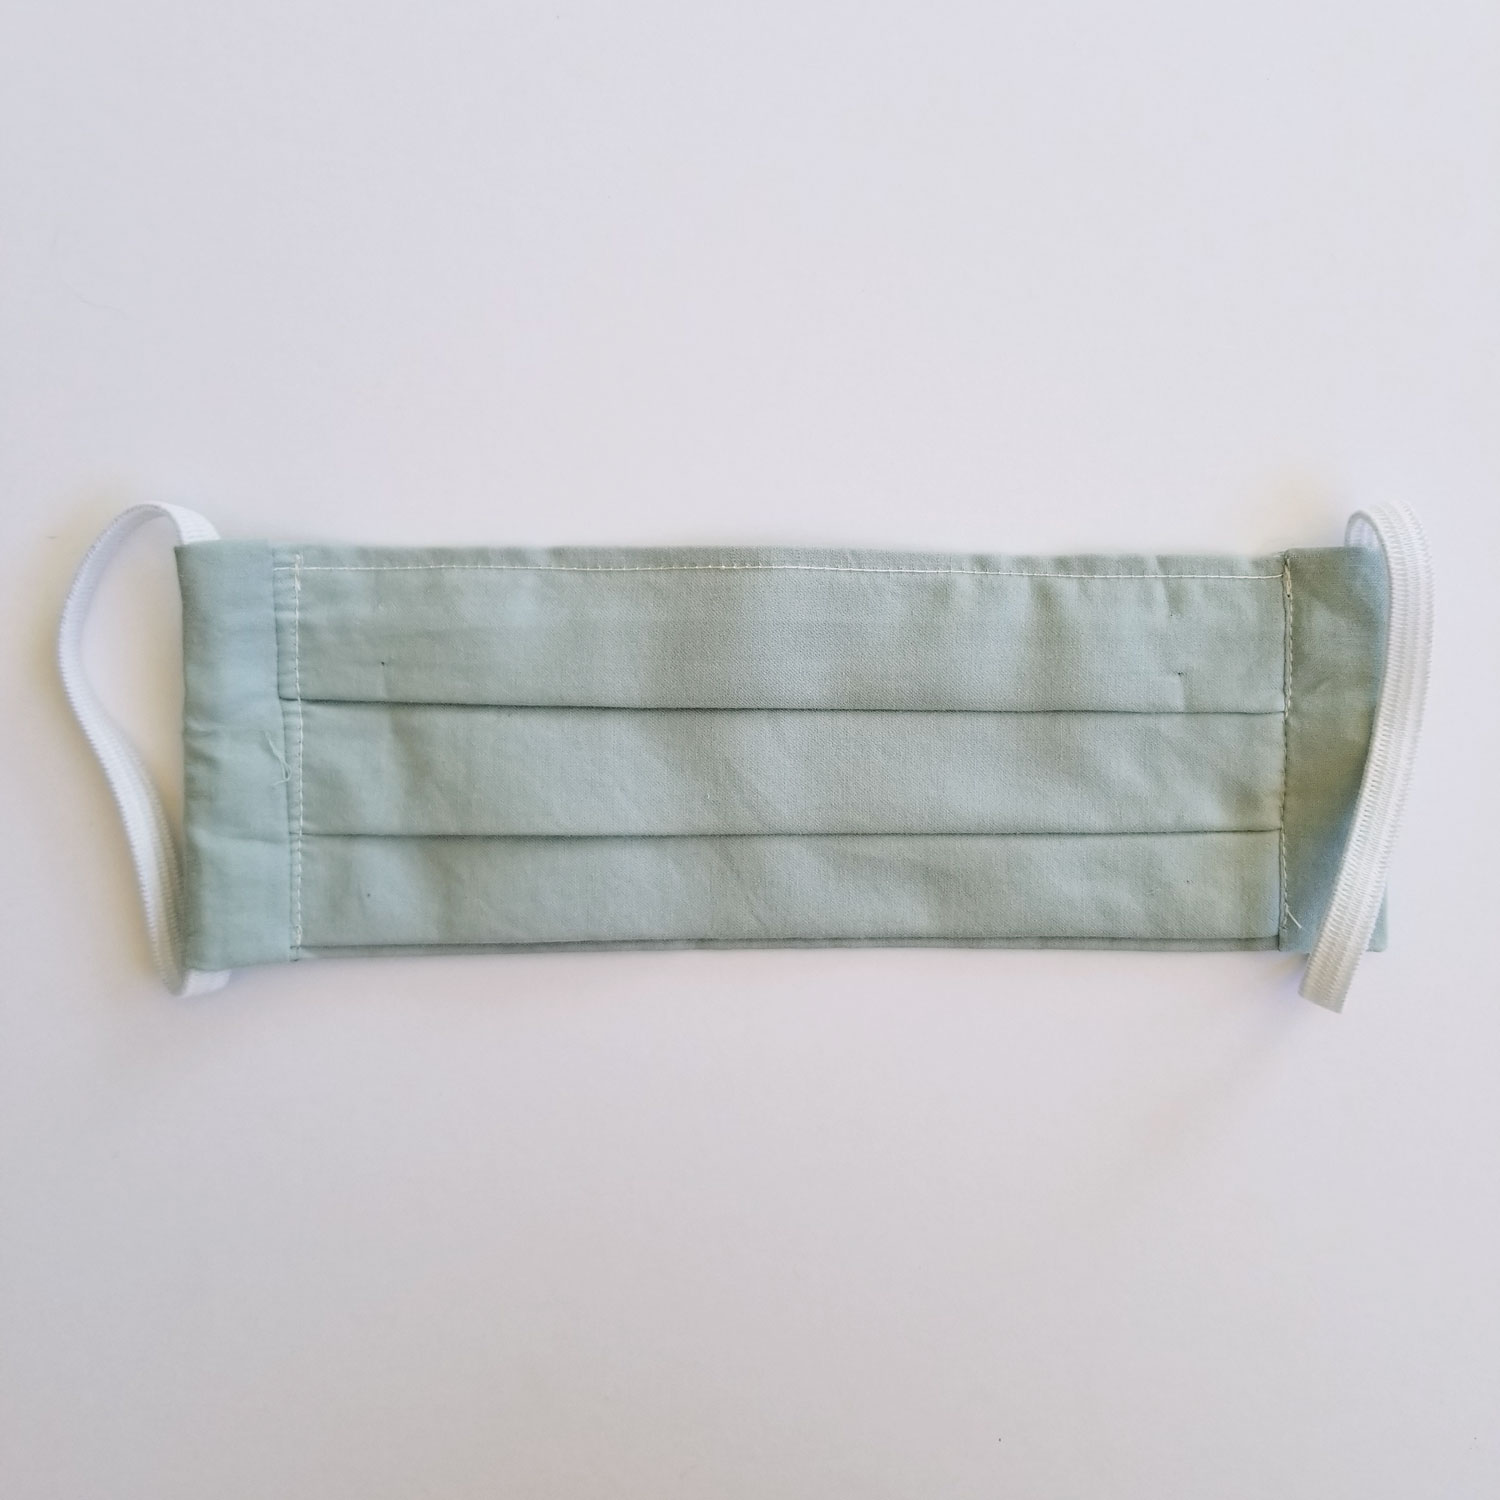 Handmade fabric mask in soft, woven green cotton